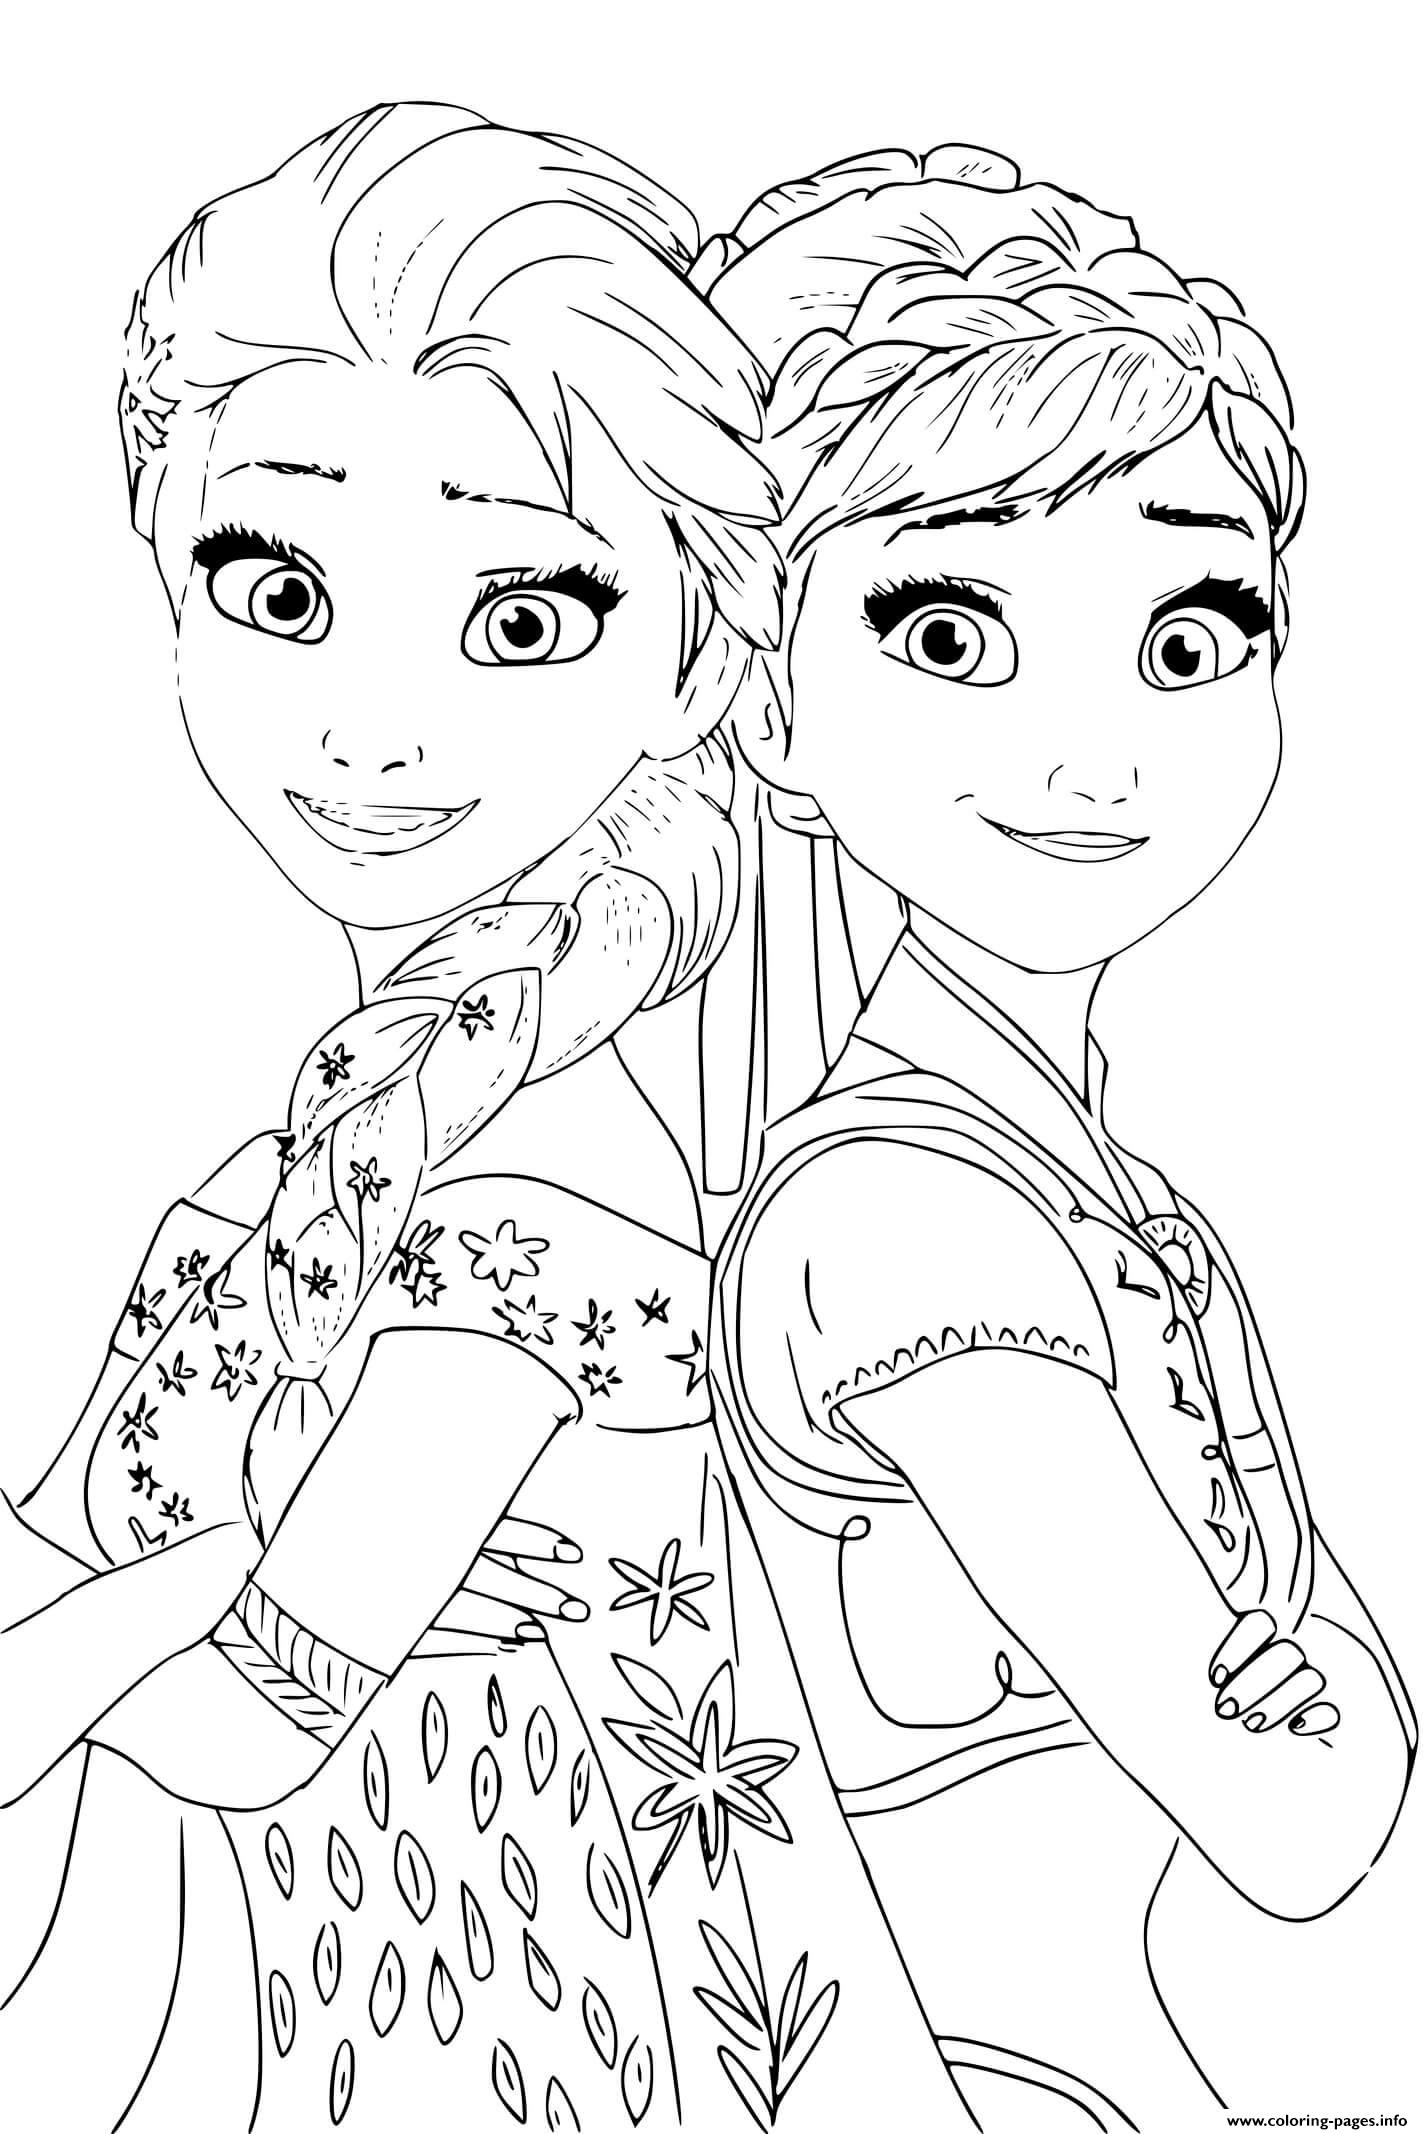 Elsa Anna Princess From Frozen 2 Coloring Pages Printable